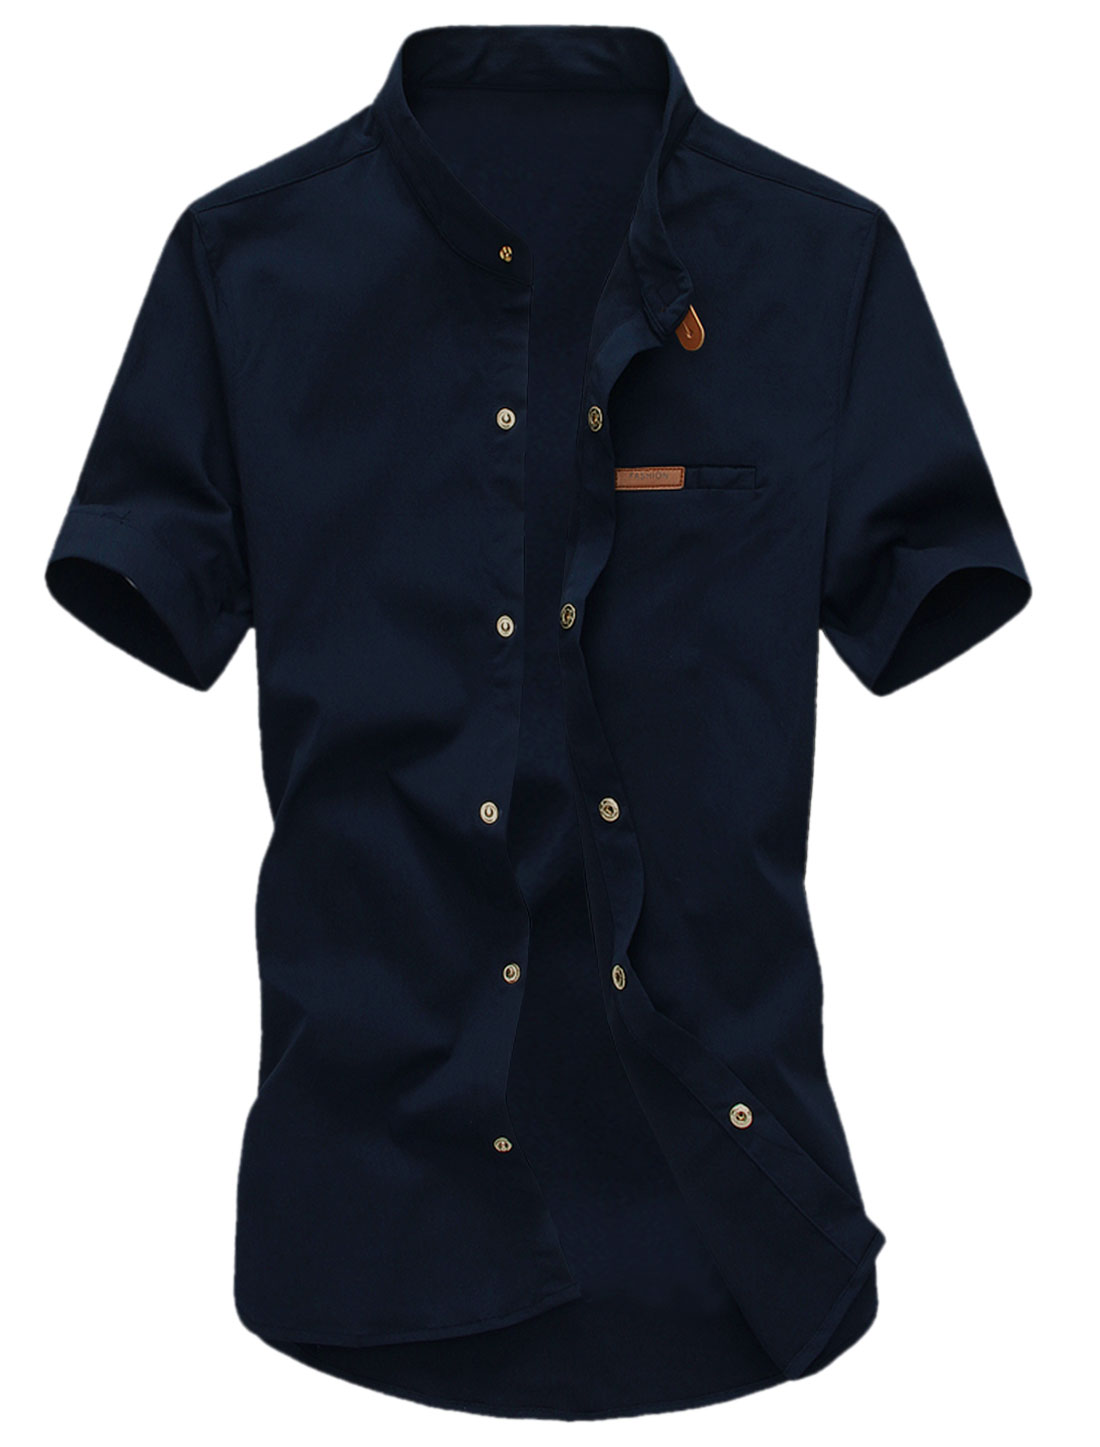 Men Short Sleeves Snap Fastener Up Leisure Shirts Navy Blue M